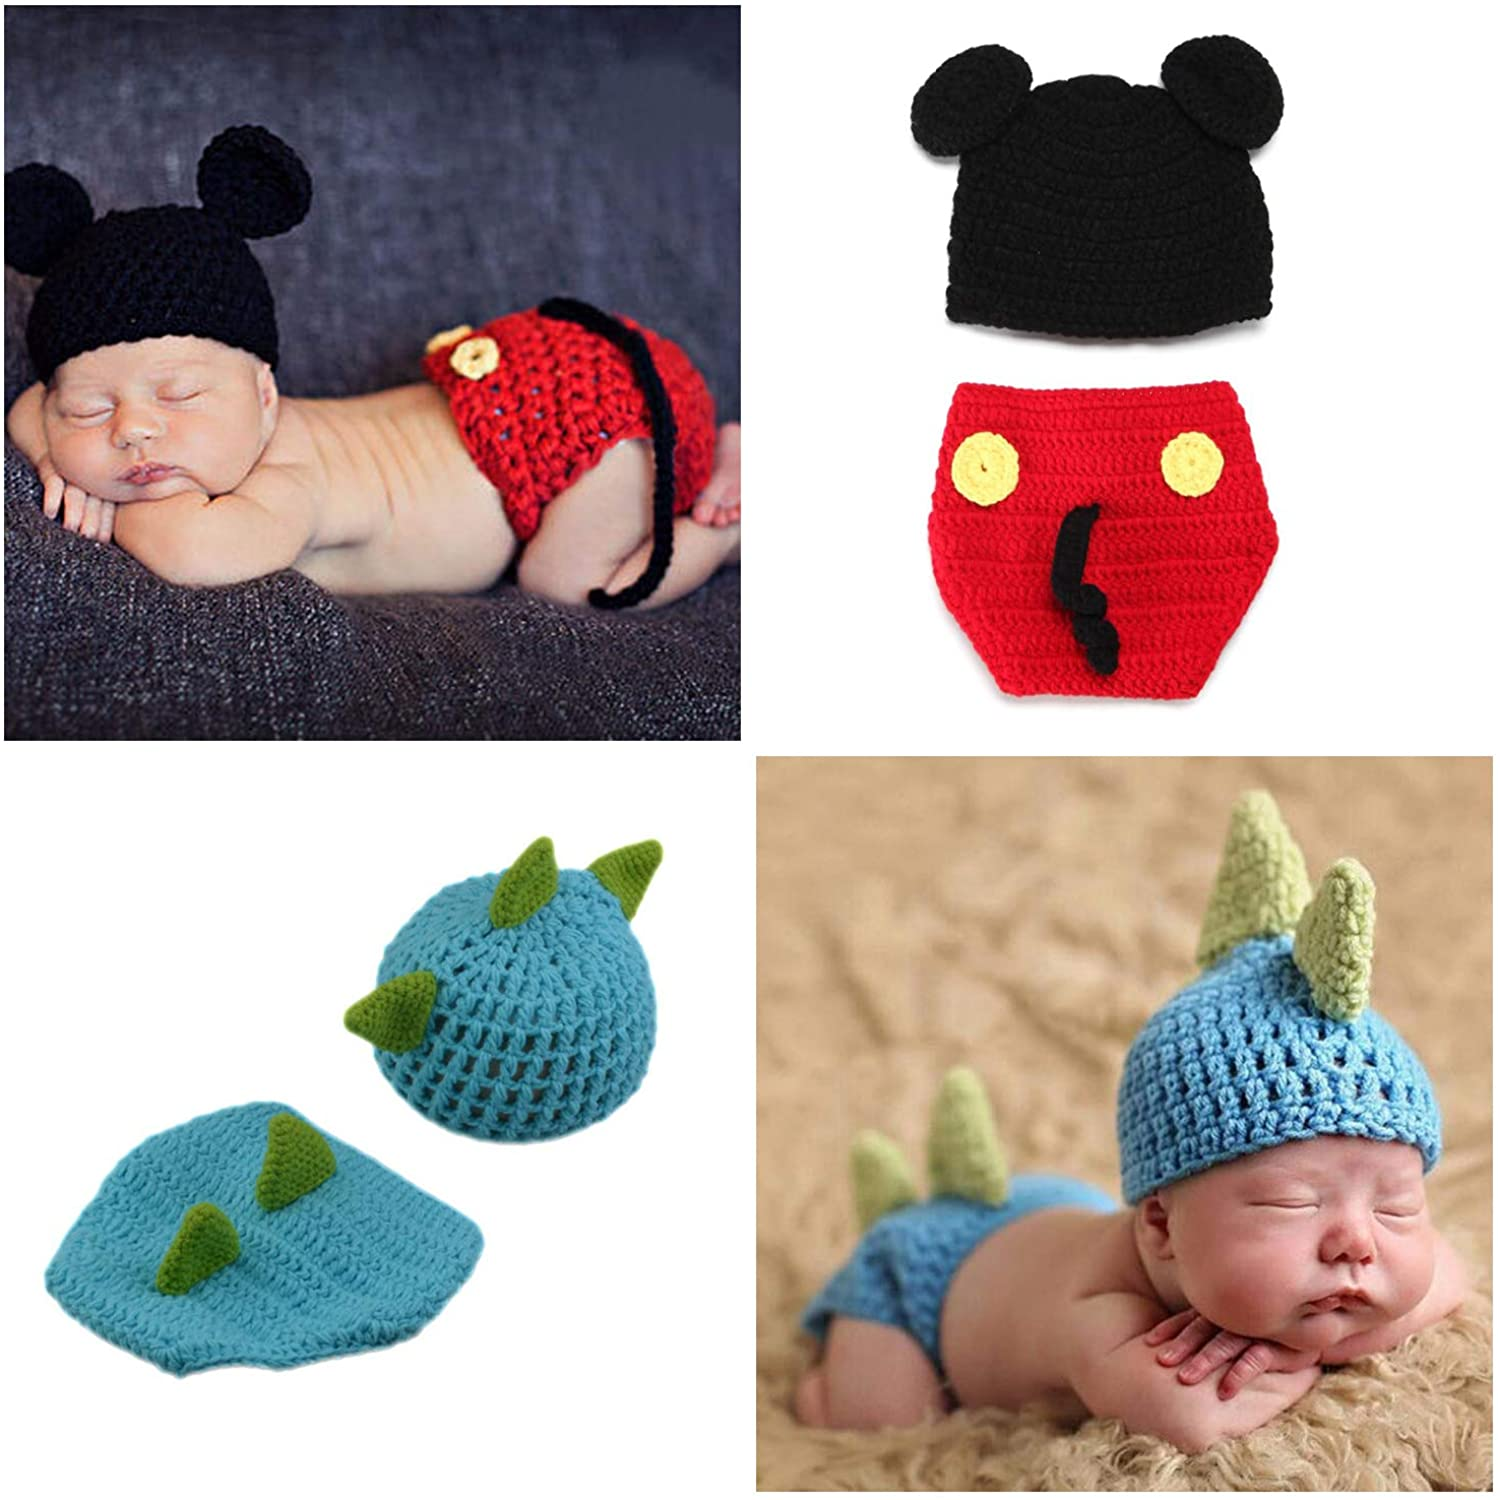 Sale item ZOCONE 2 Sets Cotton Knitted Costume Photography Atlanta Mall Gir Newborn for